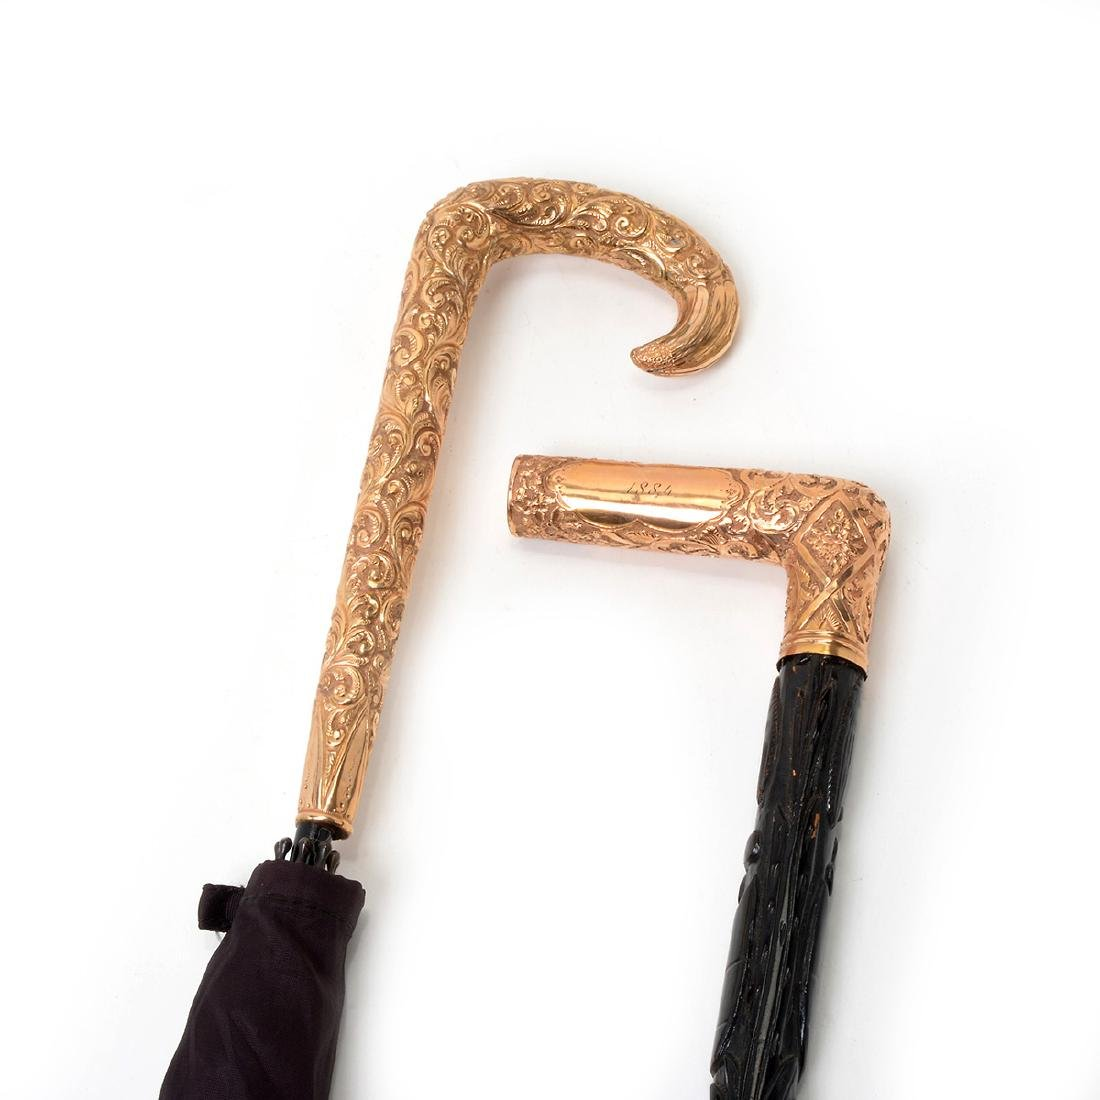 Two Gold-Filled Knob Handled Cane or Parasol - 2